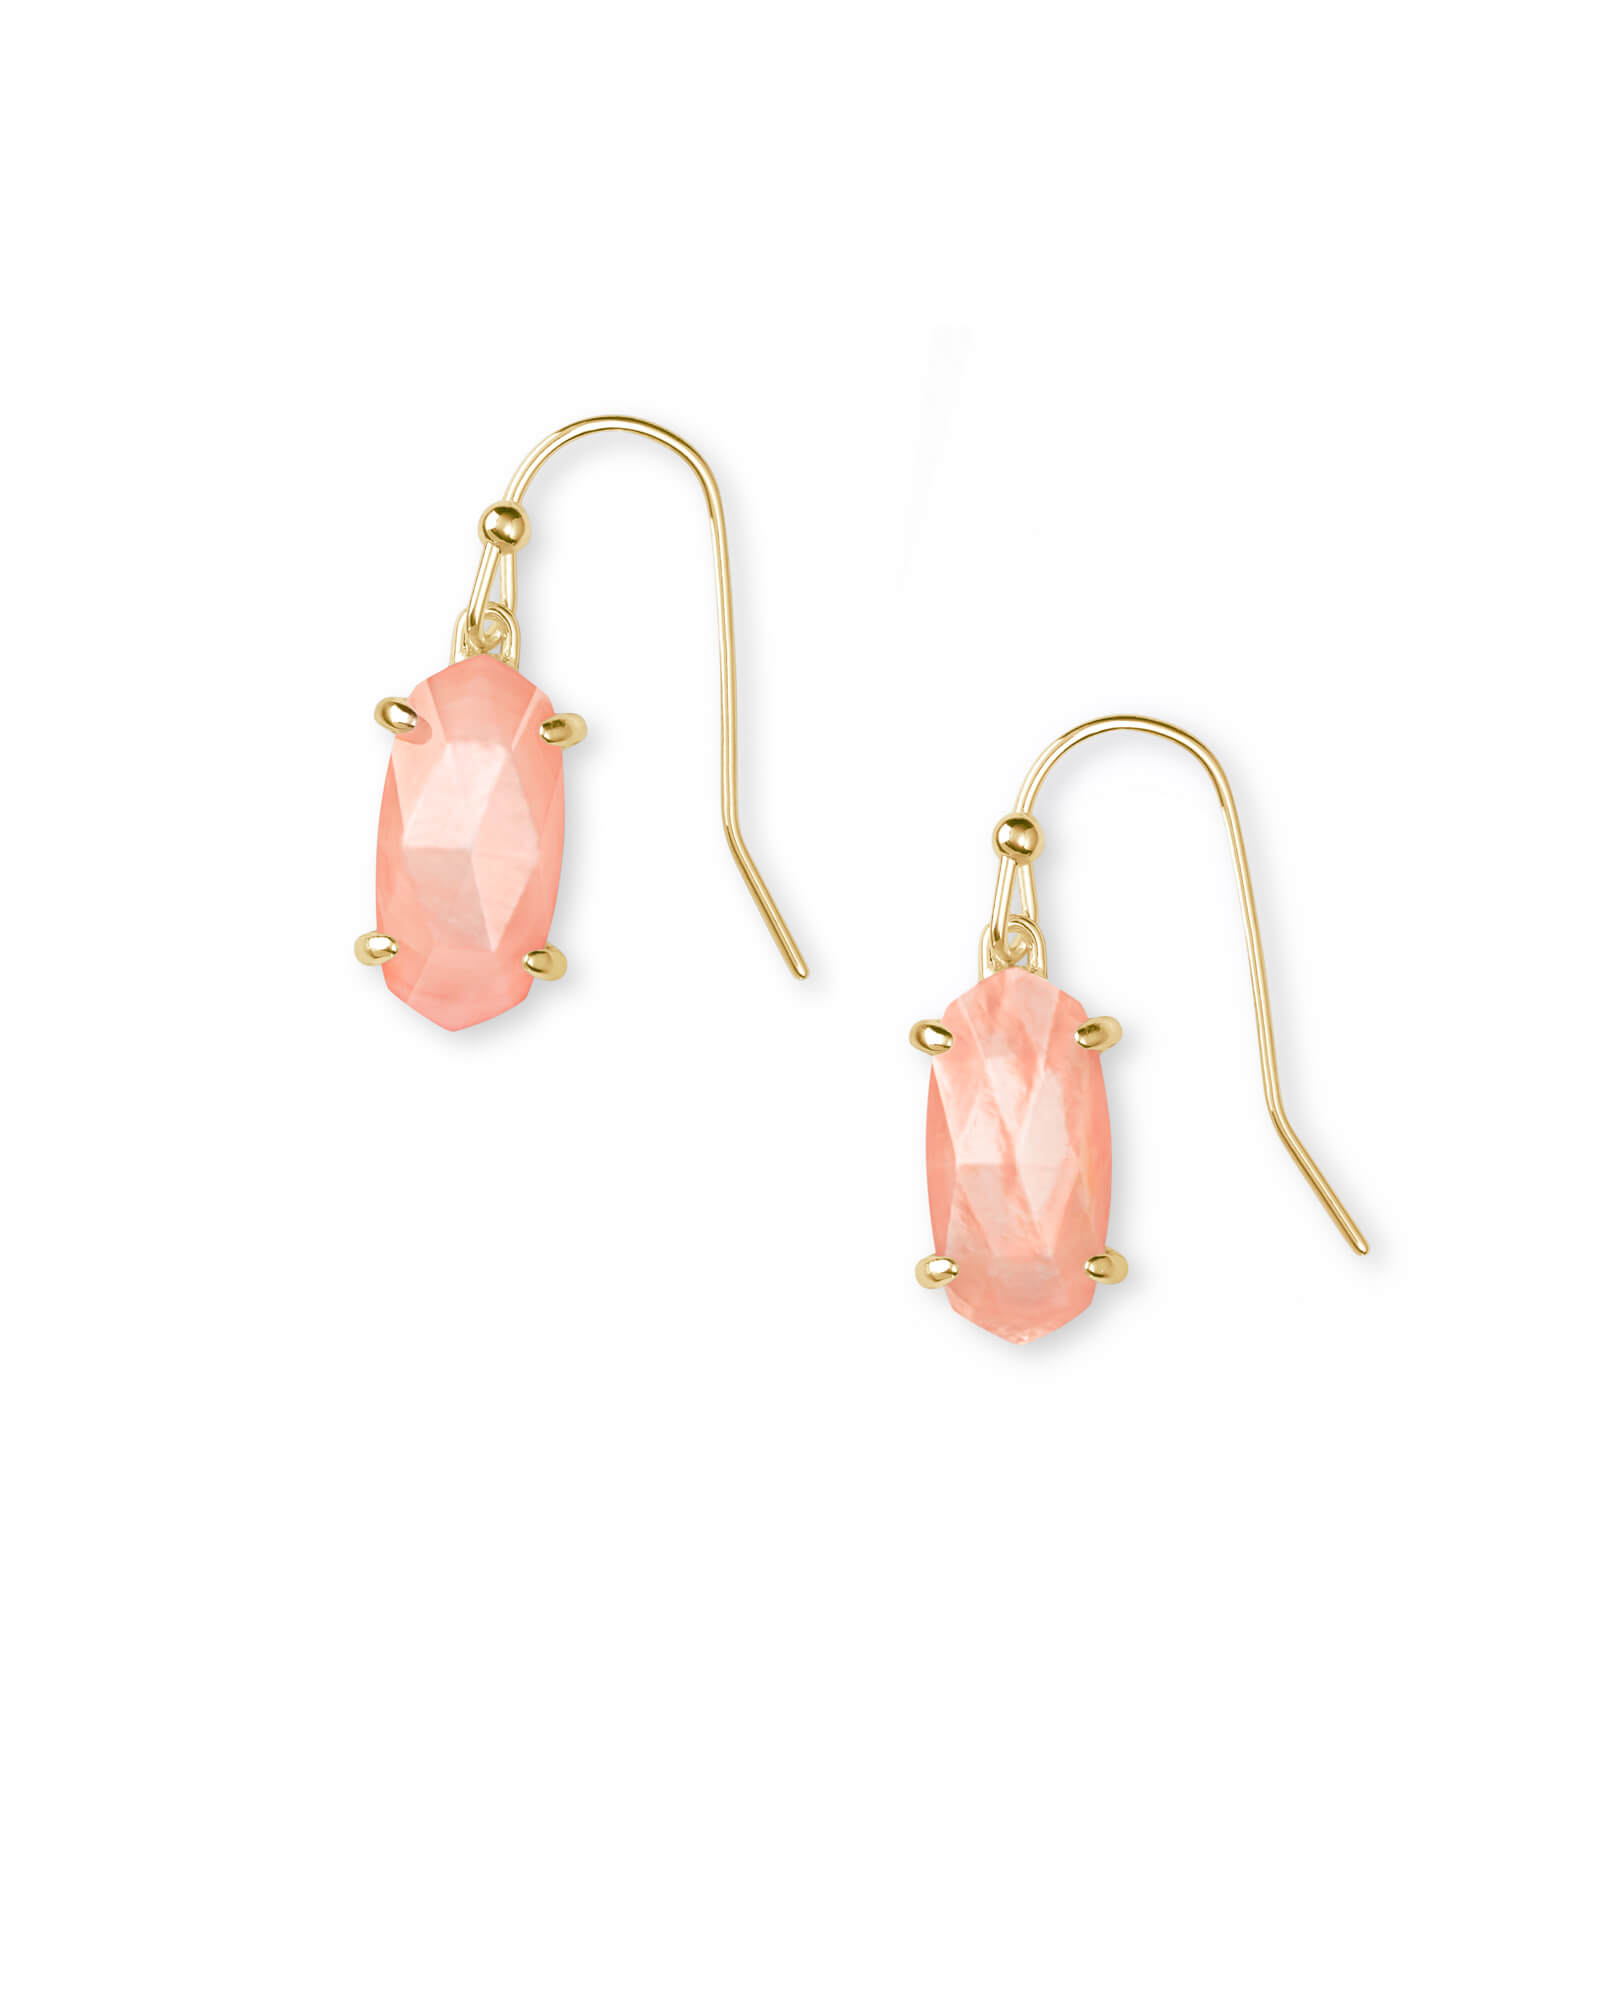 Lemmi Gold Drop Earrings in Peach Pearl